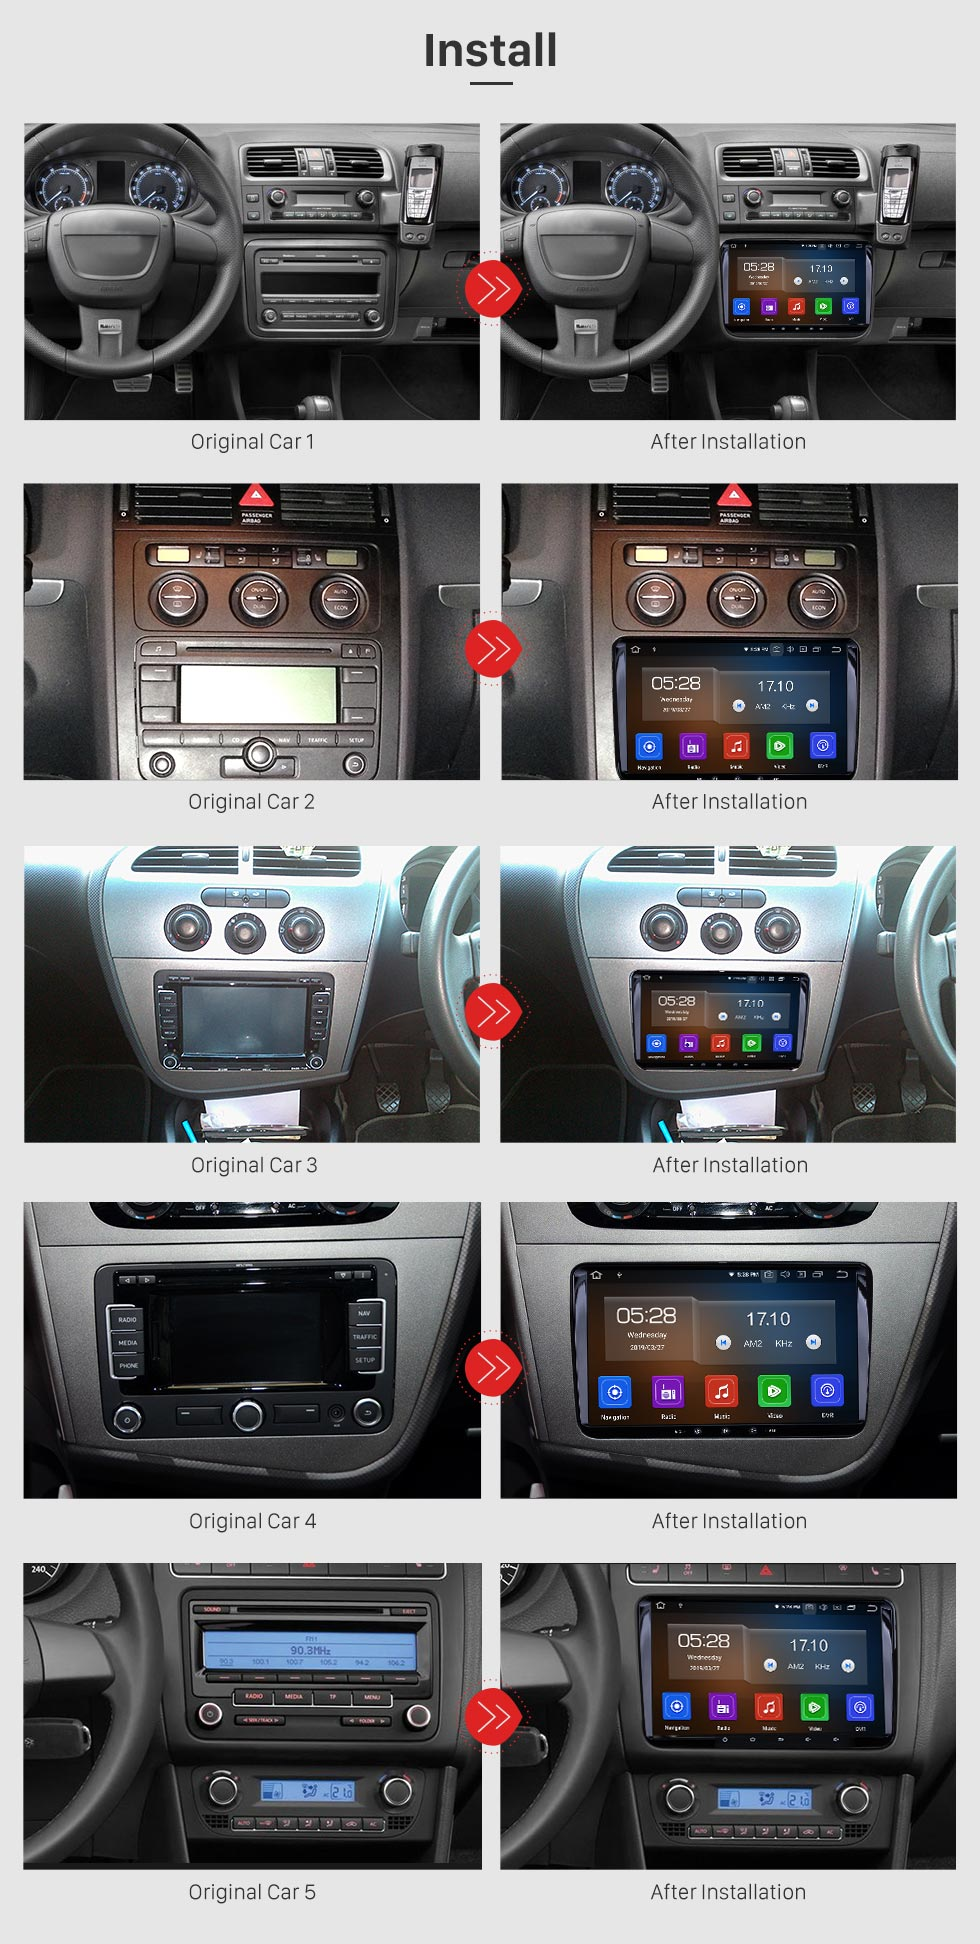 Seicane 9 inch 2 din HD Touchscreen Android 9.0 Radio Stereo GPS navigation system for 2003-2012 VW Volkswagen Passat Golf Jetta with USB OBD2 Bluetooth music Wifi